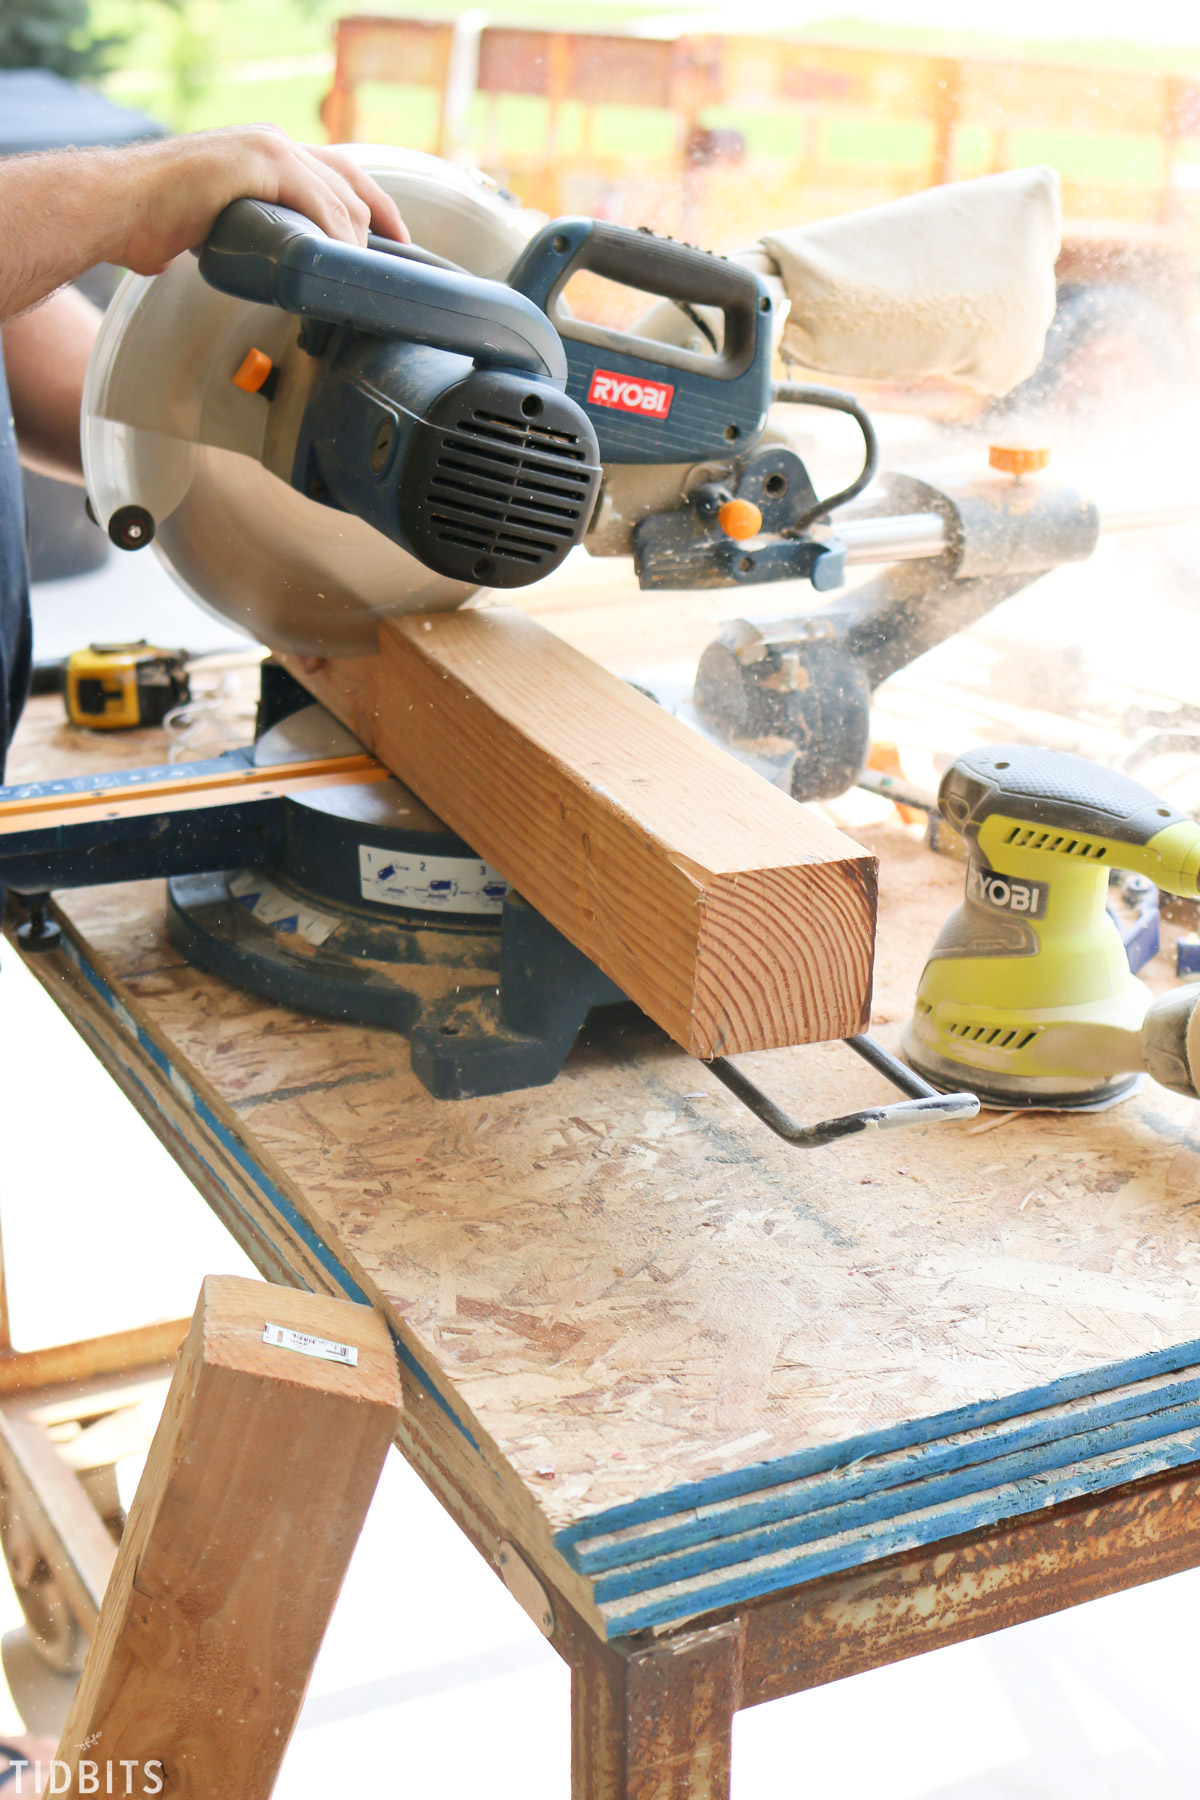 Cutting wood on Ryobi saw